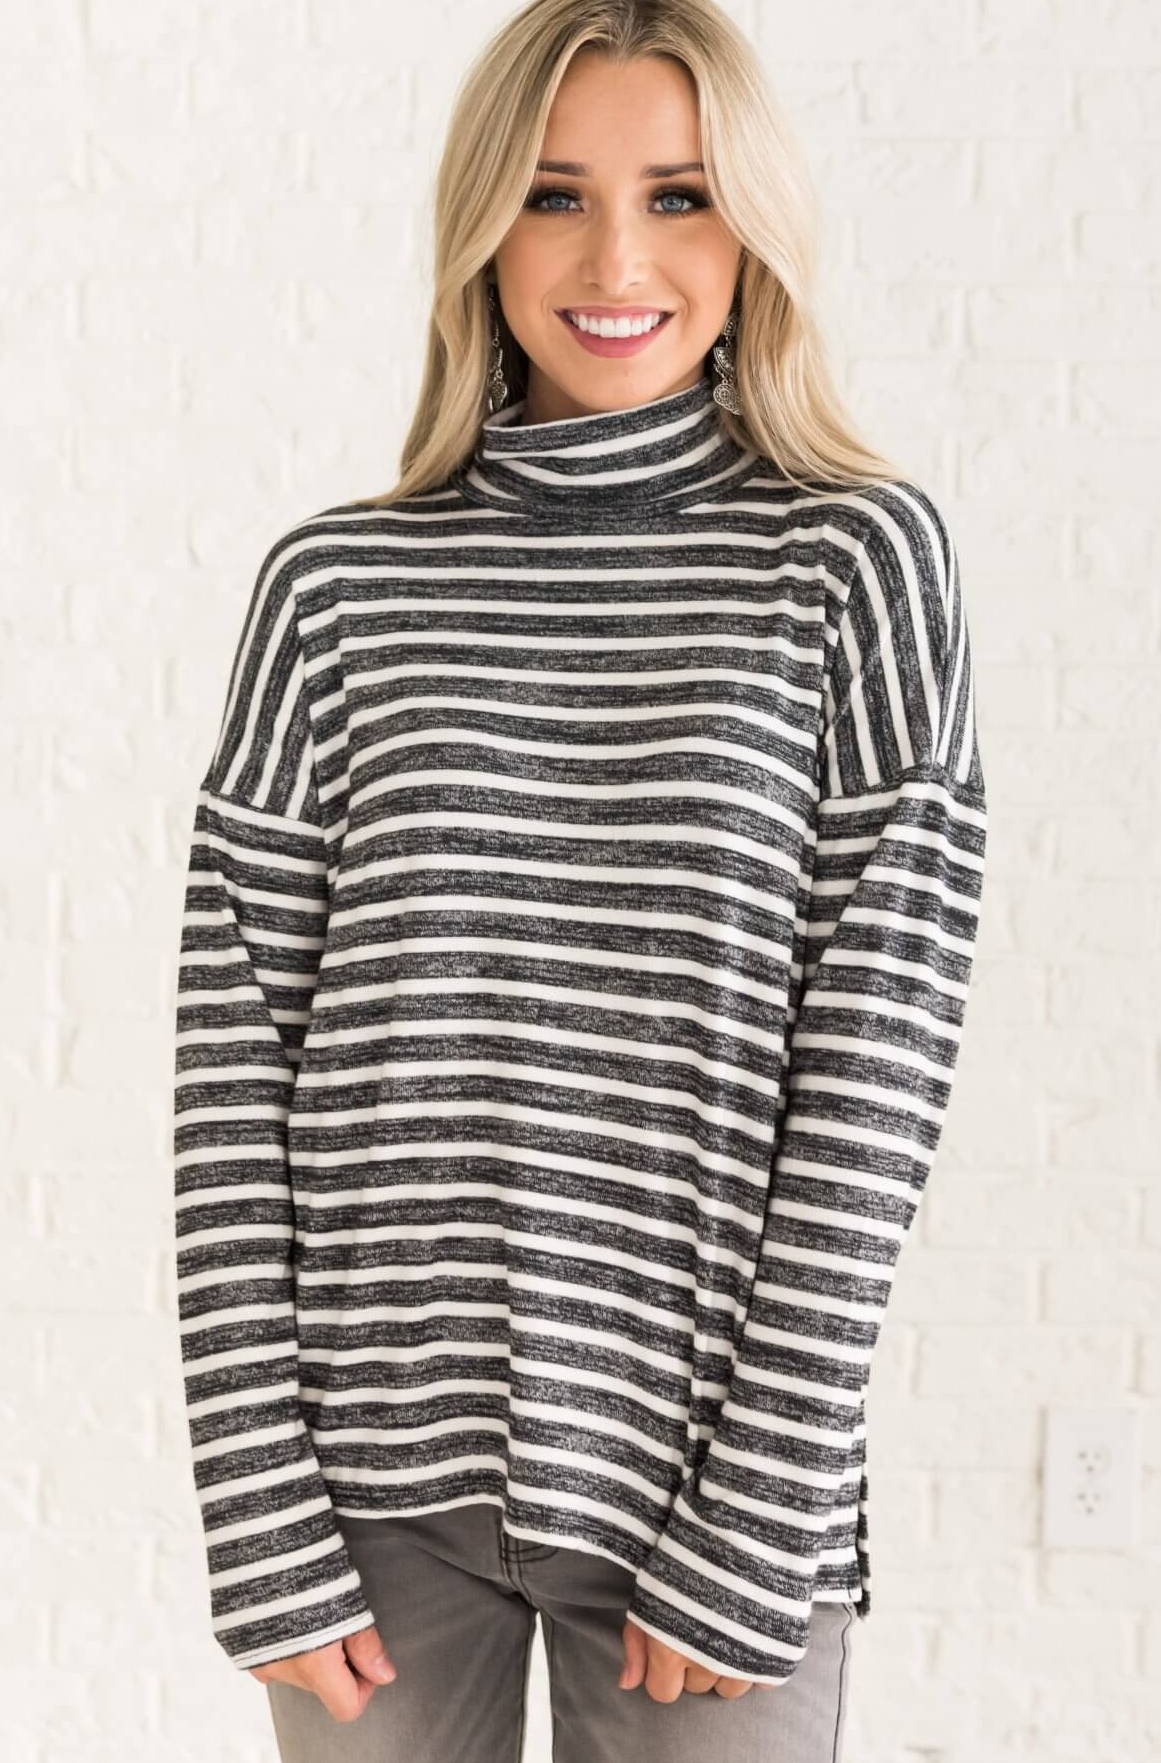 Charcoal Gray White Striped Cute Pullover Turtleneck Top